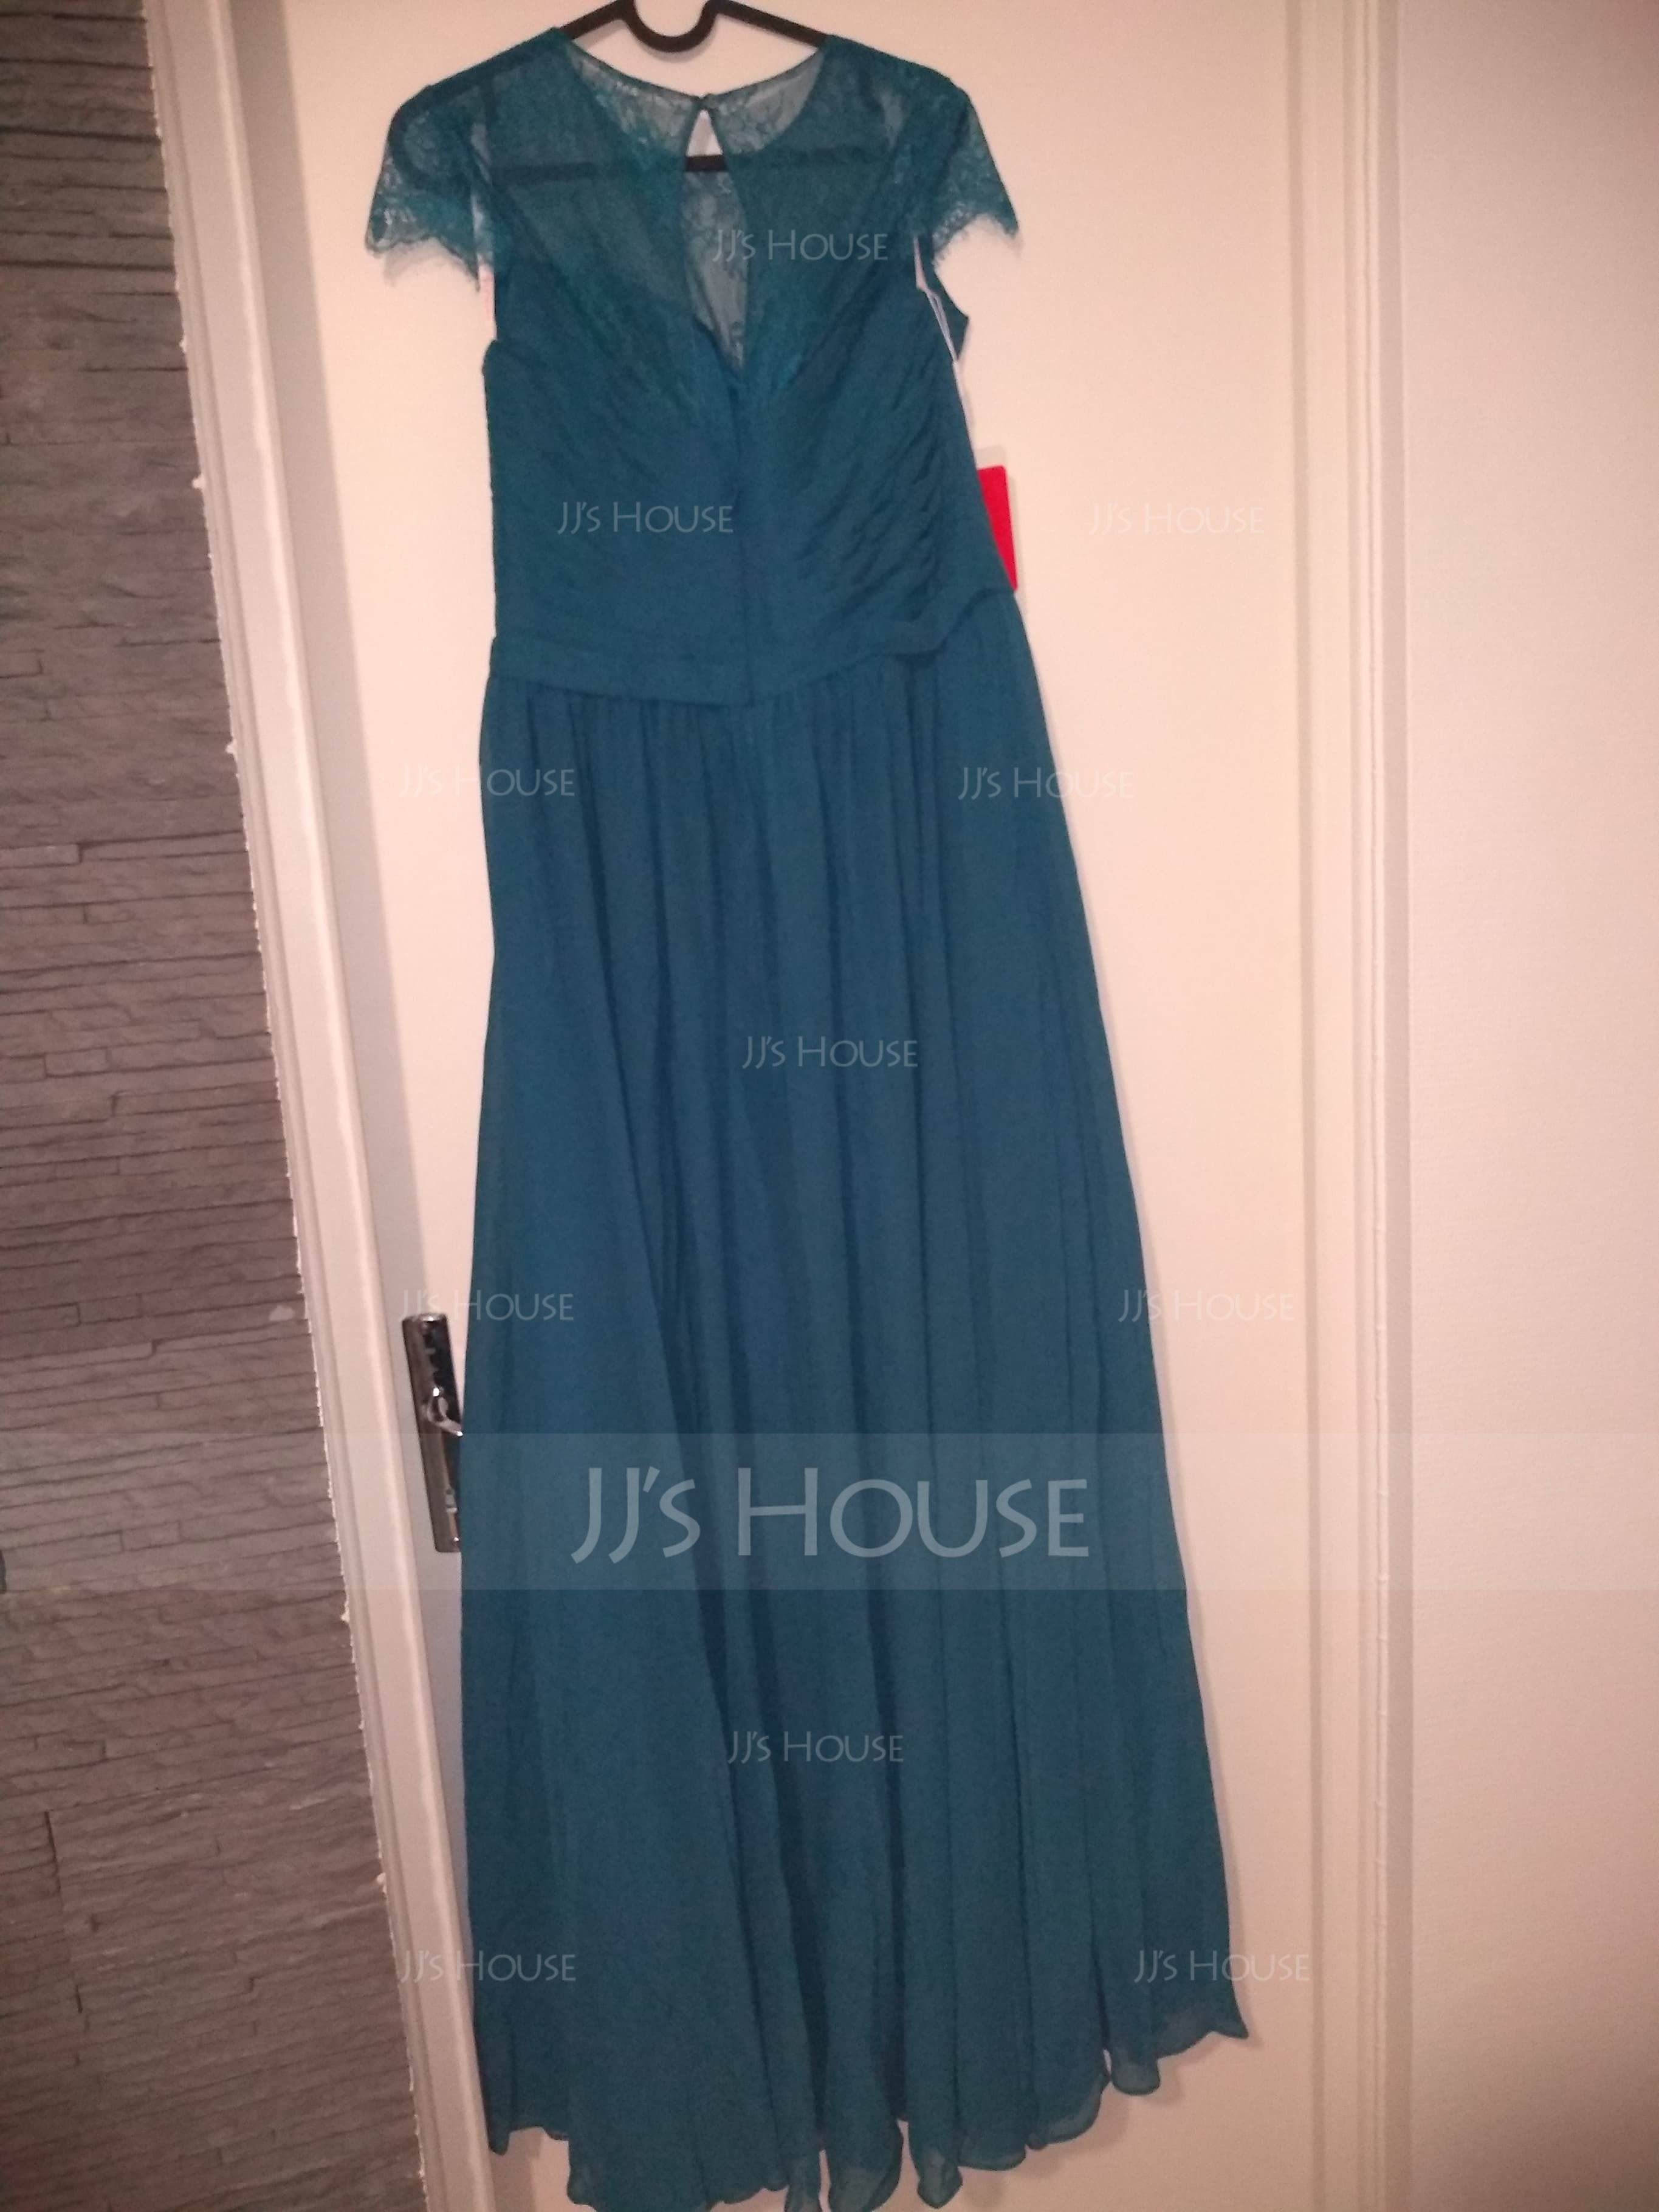 A-Line/Princess Scoop Neck Floor-Length Chiffon Lace Bridesmaid Dress With Ruffle (266183728)